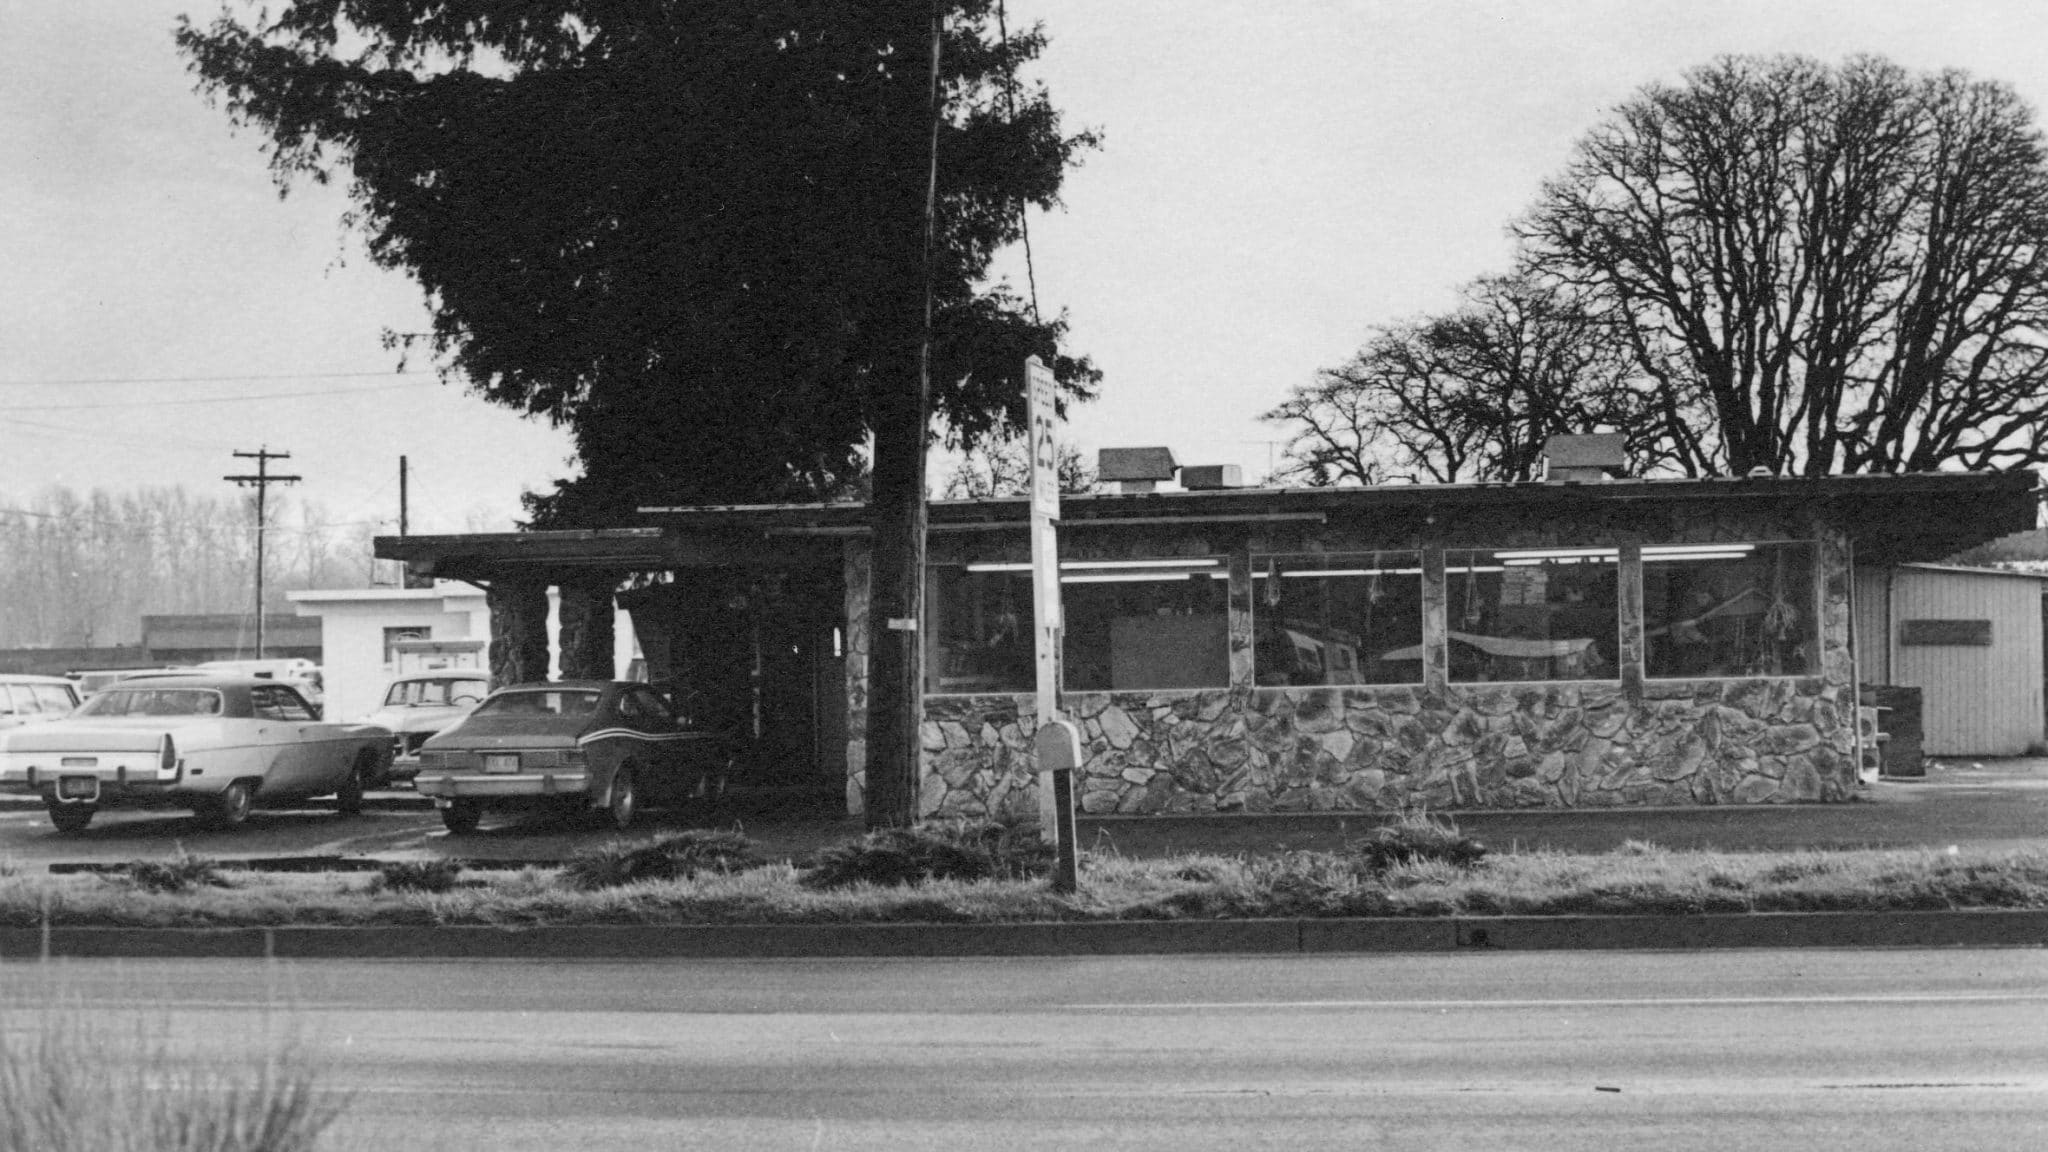 South Store in 1976